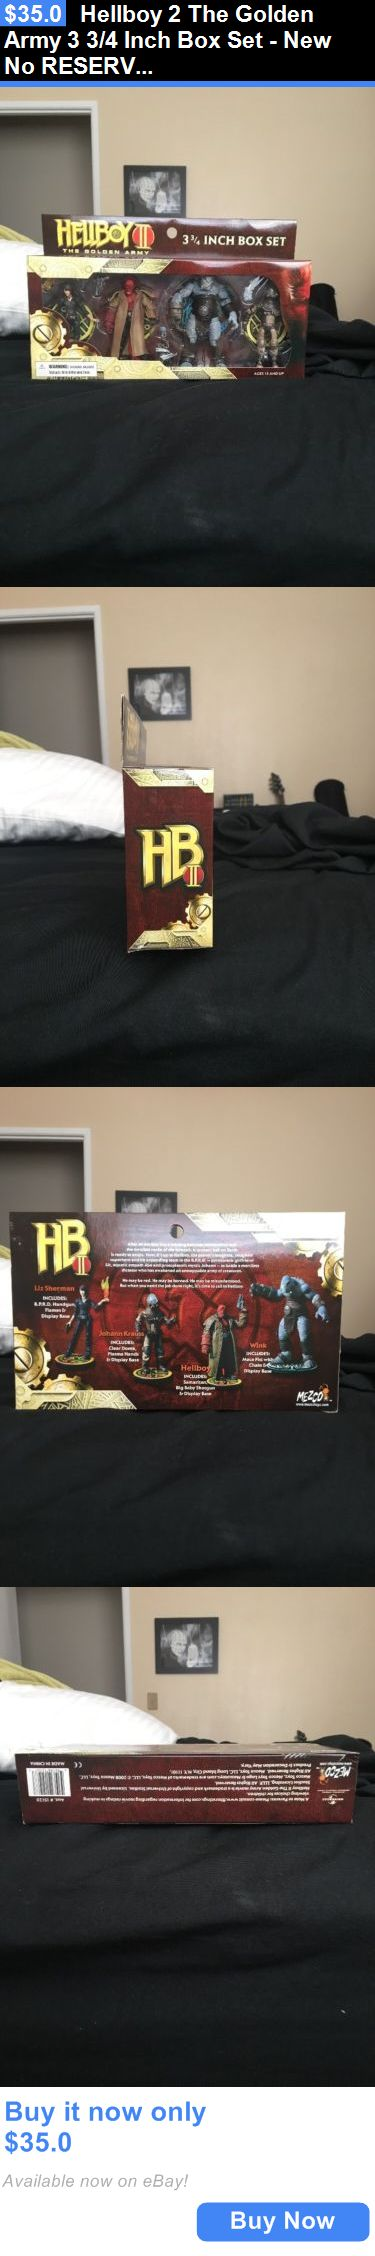 Toys And Games: Hellboy 2 The Golden Army 3 3/4 Inch Box Set - New No Reserve BUY IT NOW ONLY: $35.0